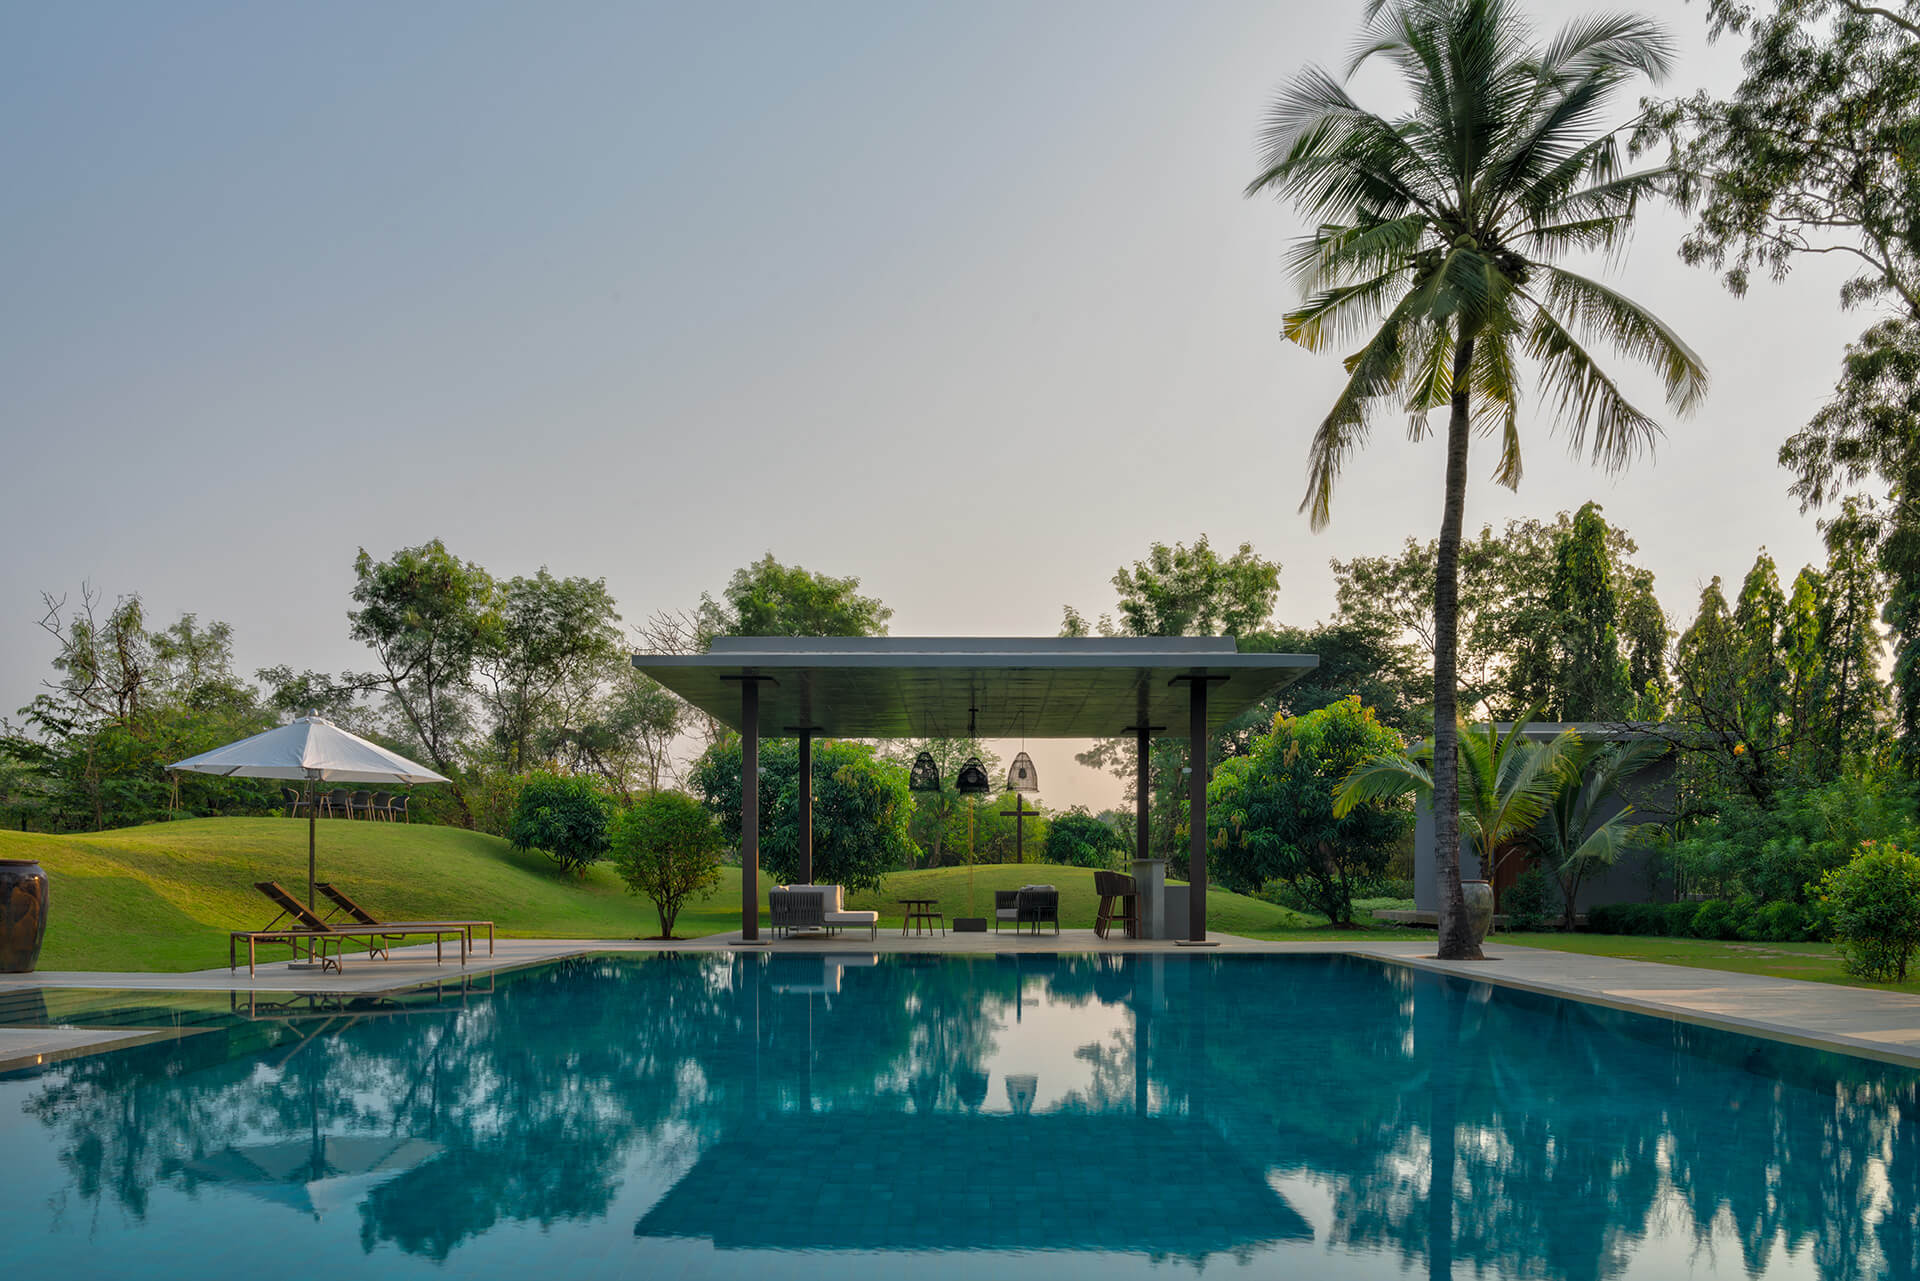 The swimming pool and the gazebo | Uminoya – Weekend home in Alibaug | Clay Architecture and Interiors | STIRworld